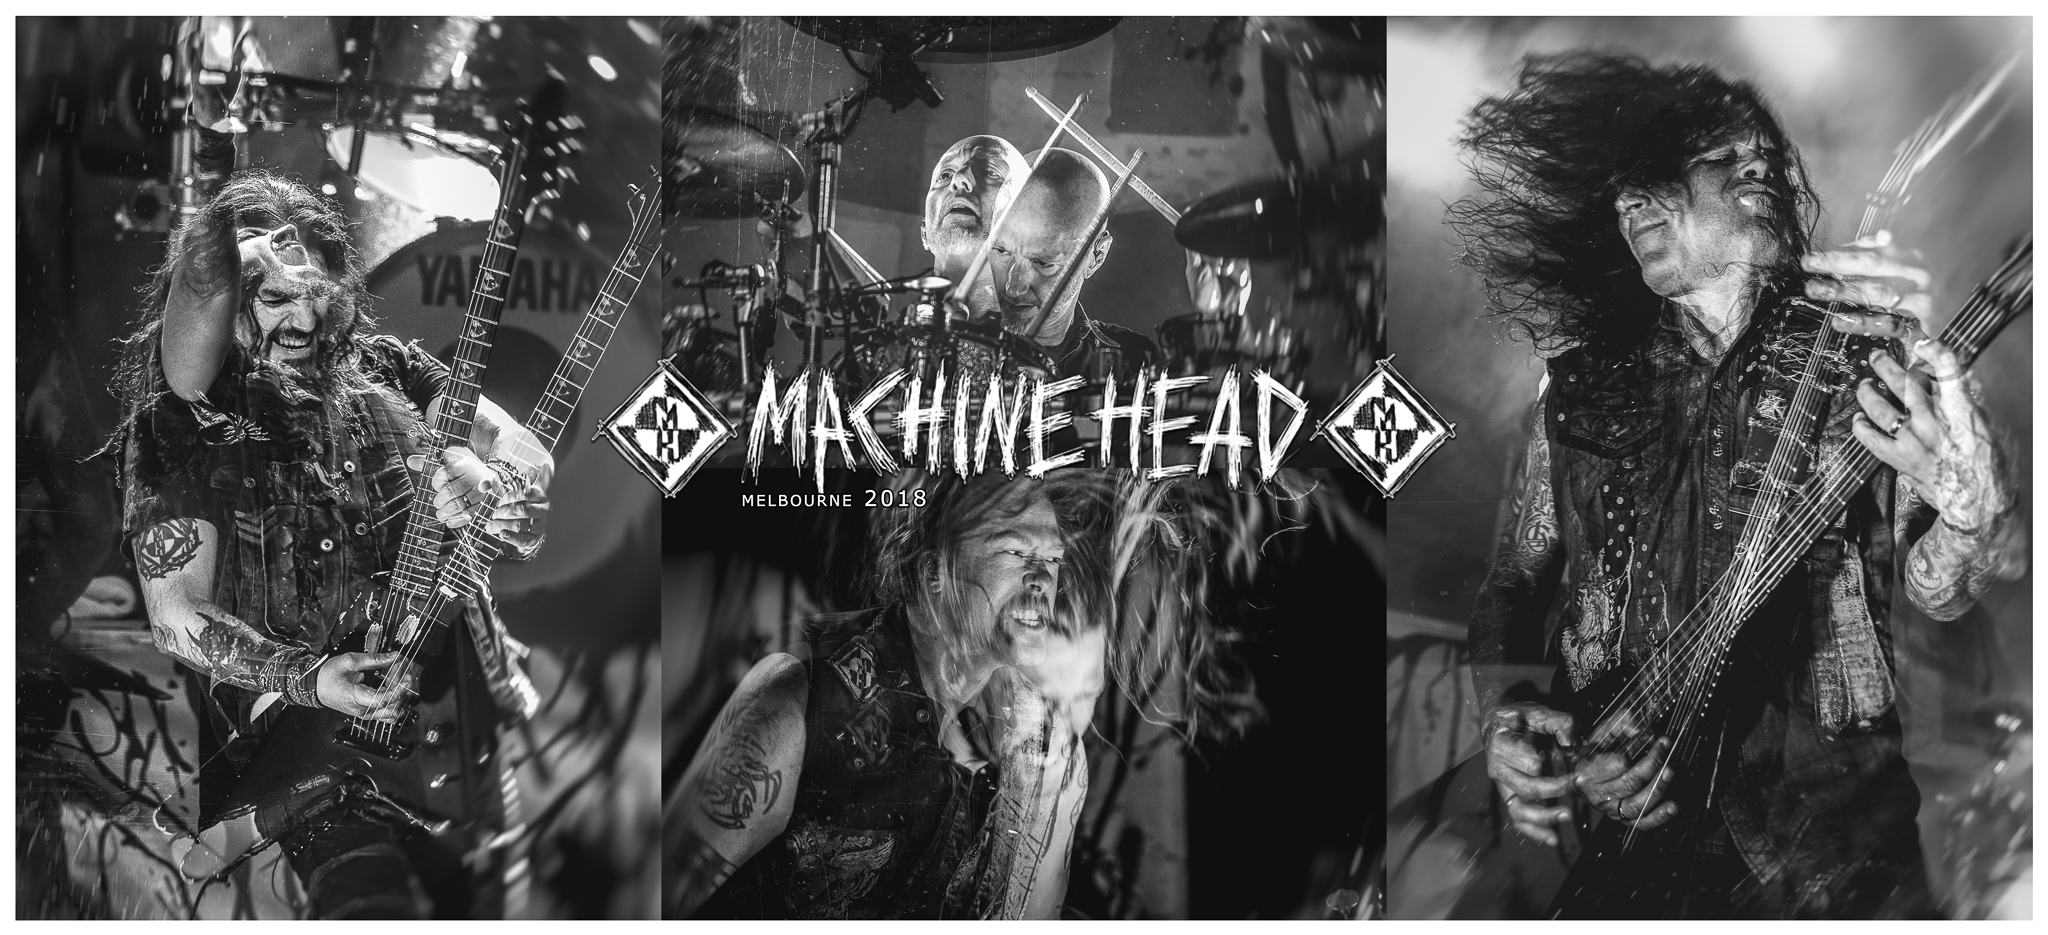 MACHINE HEAD  - Live in Melbourne - 19/7/18  These guys put on an incredibly energetic show at the Forum Theatre in Melbourne last weekend and I was lucky enough to be one of the few photographers given the opportunity to capture them!